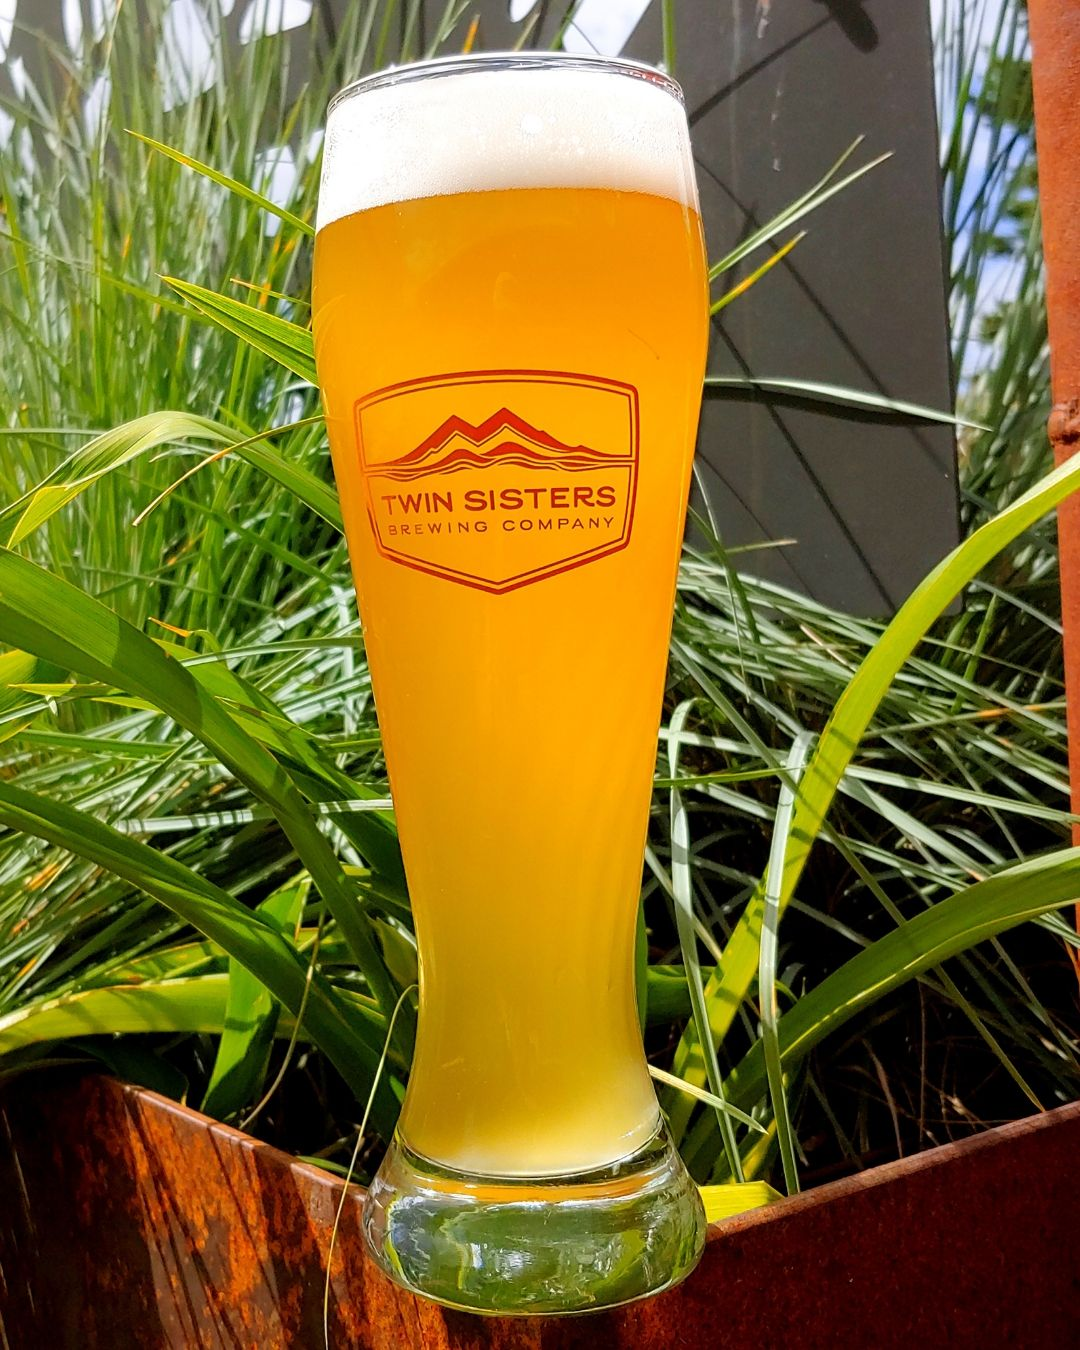 Hugh Hefner Hefeweizen - 5.8% ABV | 18 IBUPerfect for a warm summer afternoon, this brew offers a rounded blend of banana, clove, and bready notes with an underlying tartness. This delicious Hef is a 50/50 Wheat and Barley mix with a tantalizing yeast character. 